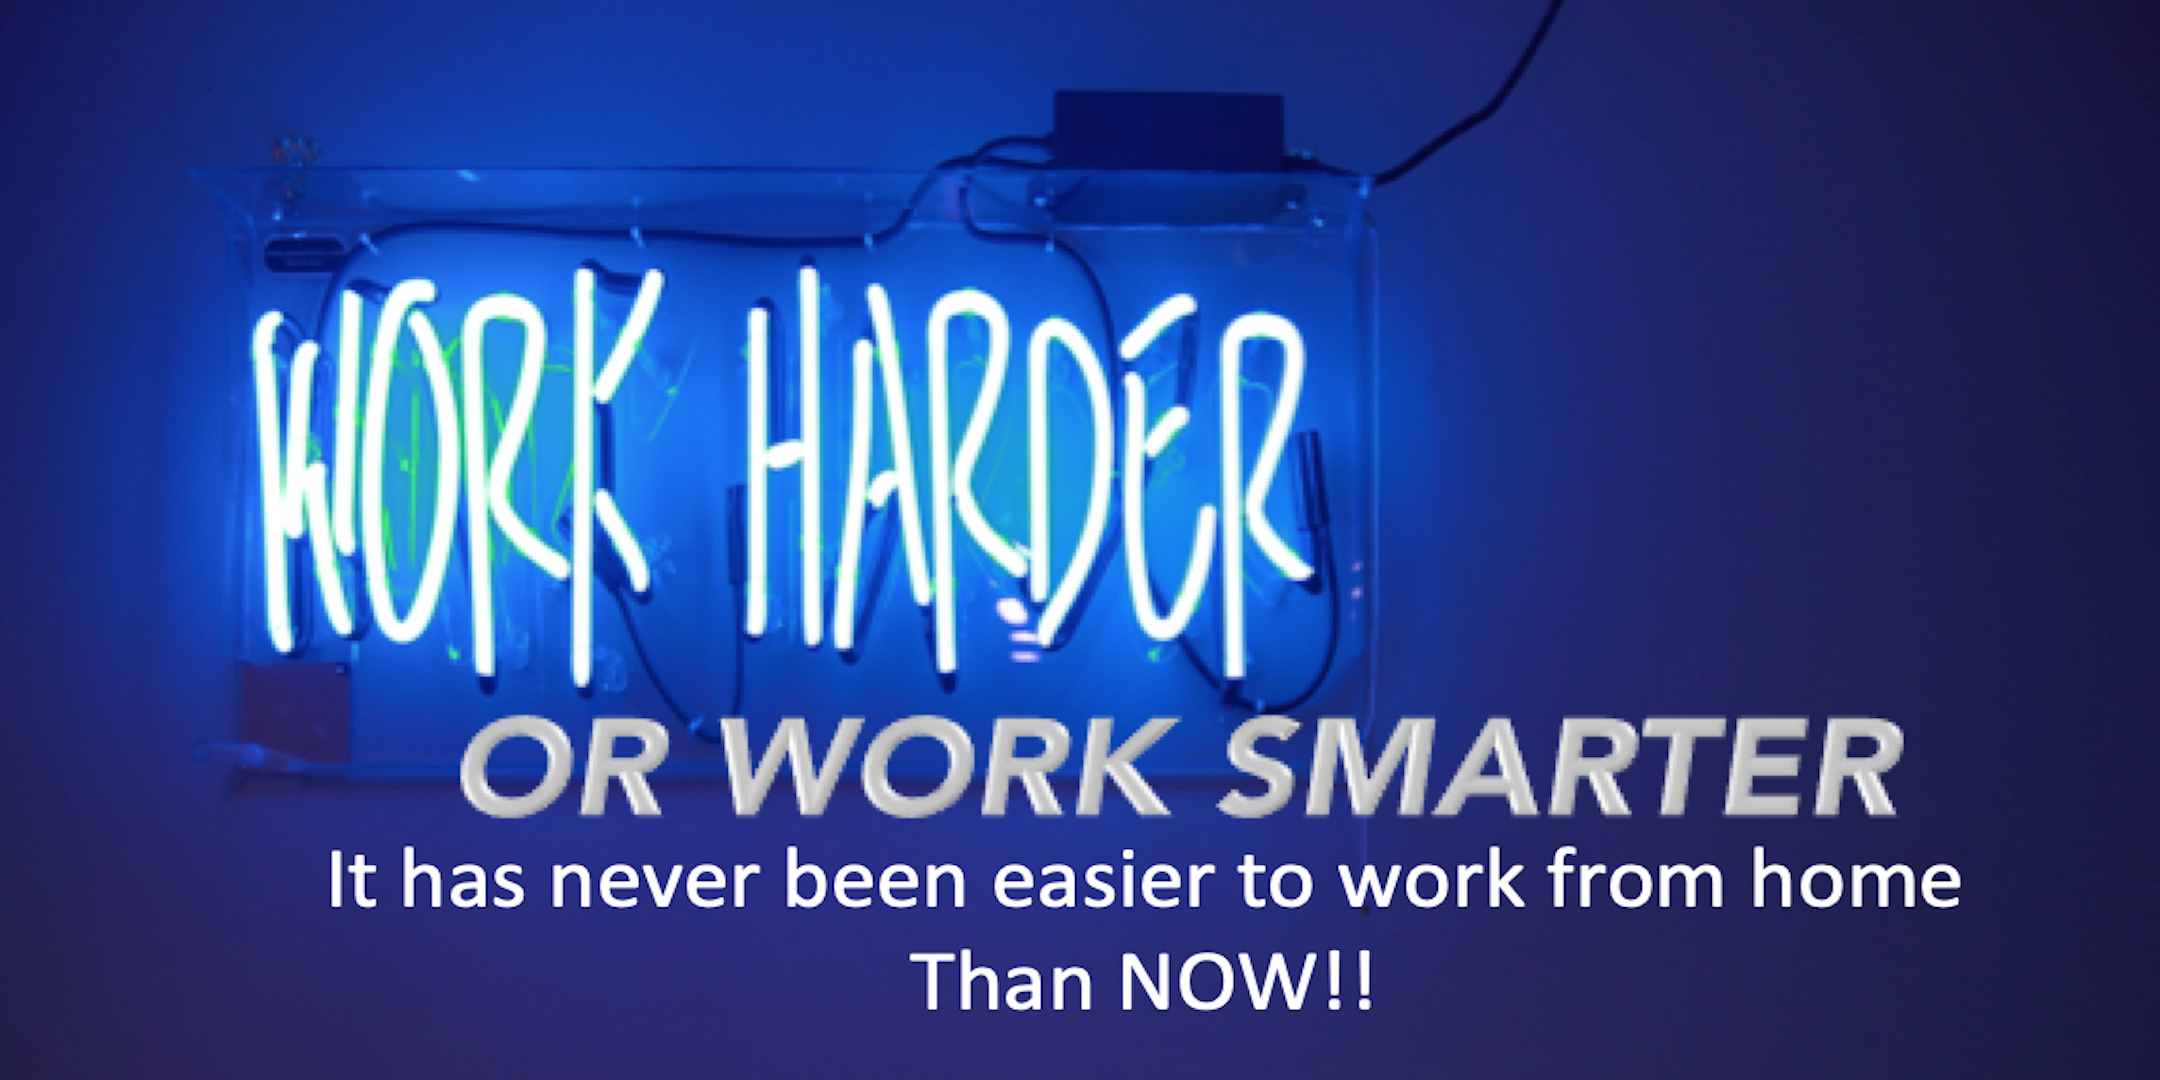 ***STRESSED BY THE PROSPECT OF LOOSING YOUR JOB*** WHY NOT WORK SMARTER FROM HOME